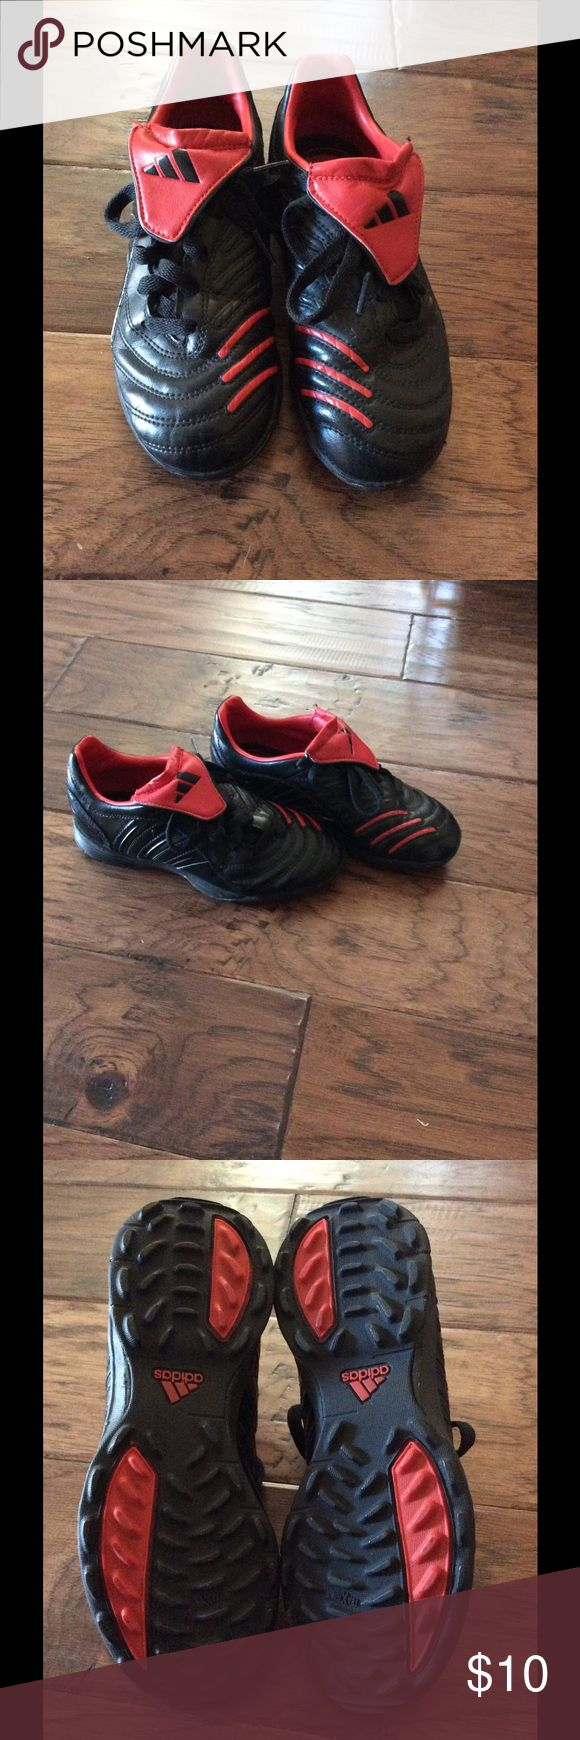 Boys Adidas indoor soccer shoes These boys indoor soccer shoes are black with red stripes. They are boys size 3. They are in great, gently used condition. Adidas Shoes